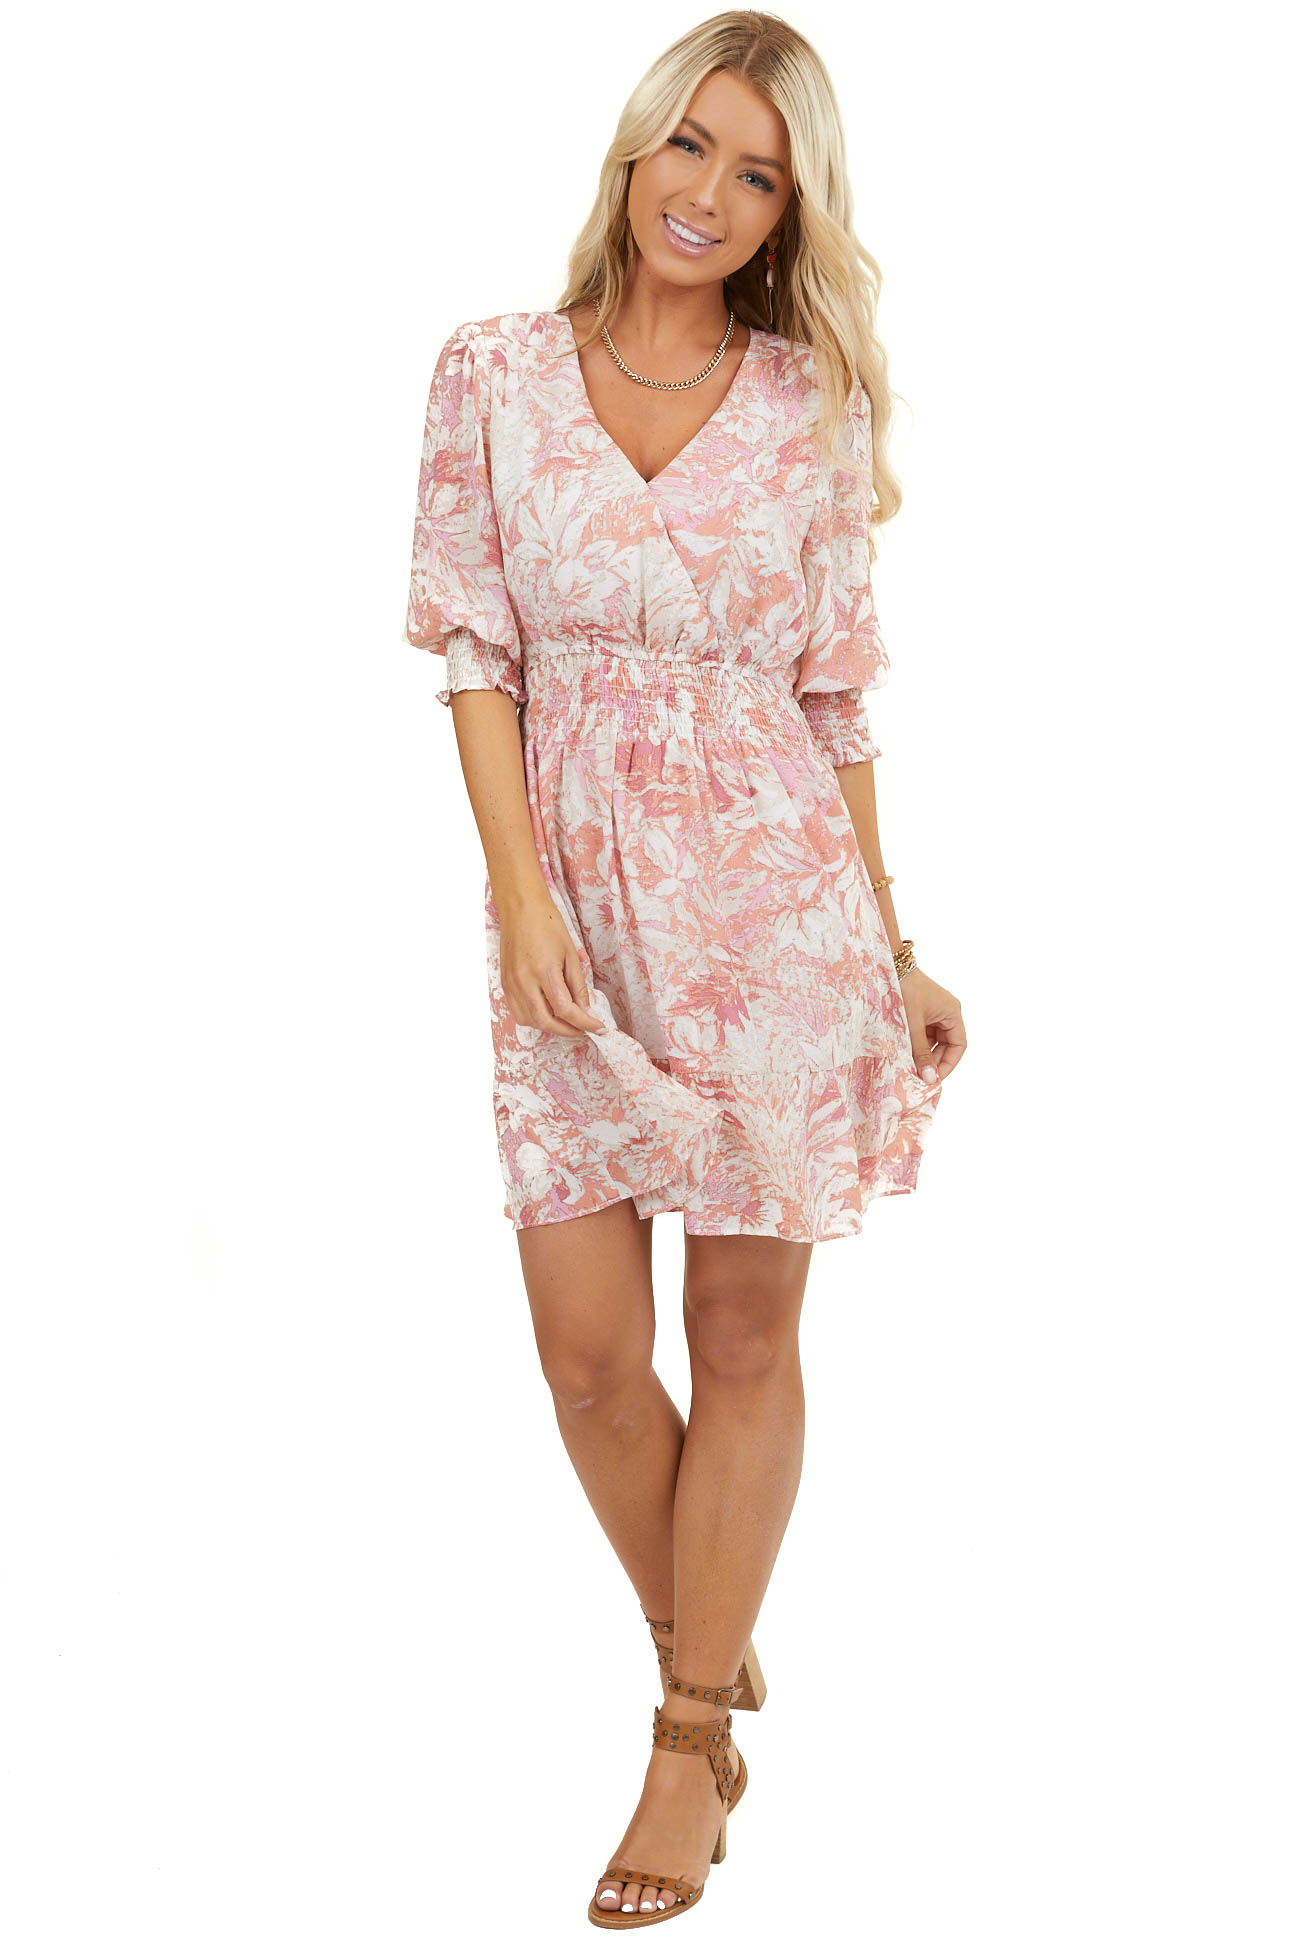 Coral Floral Print Surplice Mini Dress with Smocked Details